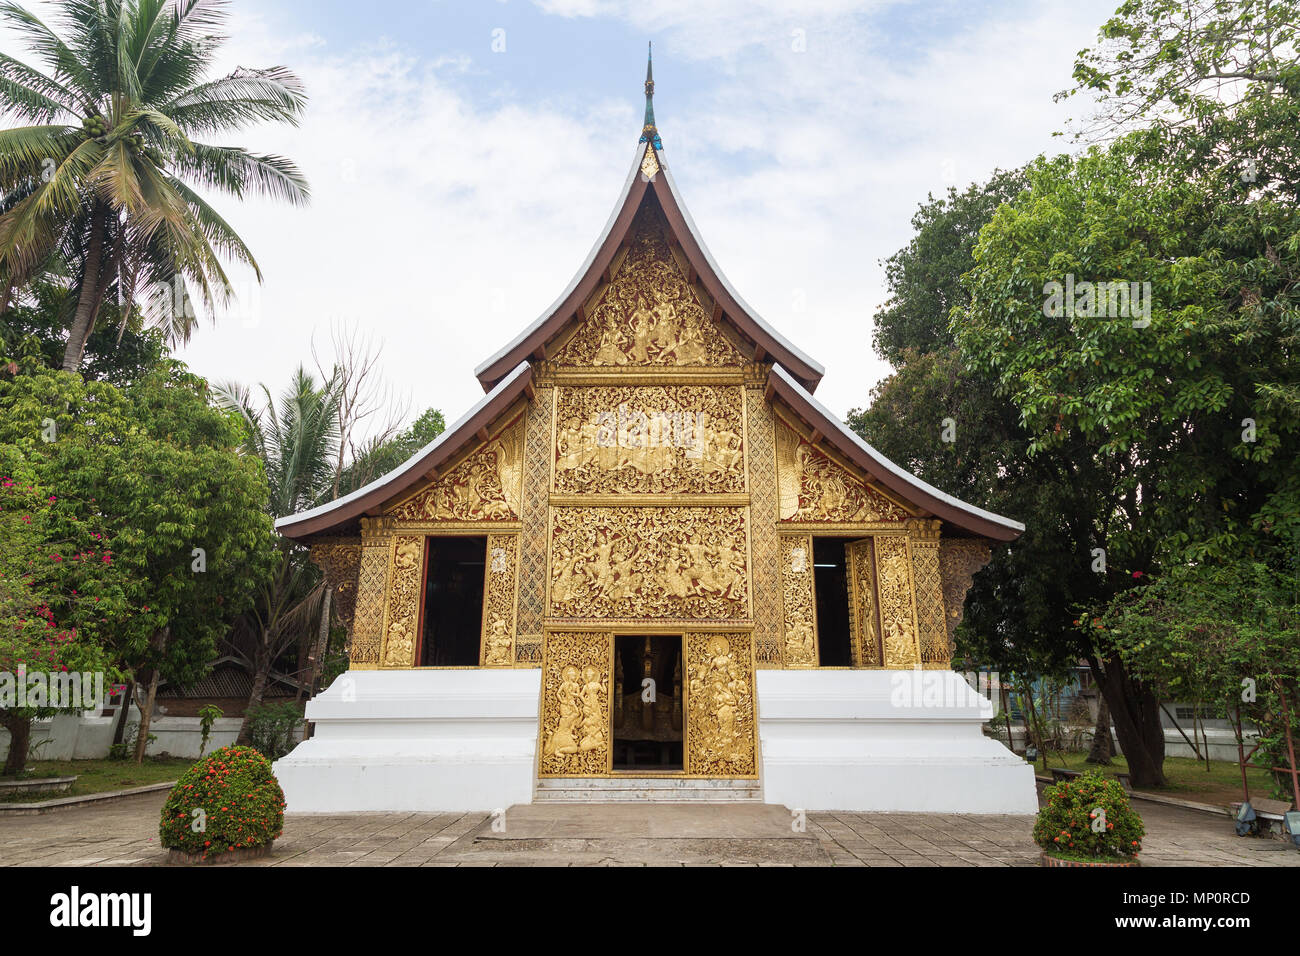 Front view of the ornate Funeral chapel at the Wat Xieng Thong temple ('Temple of the Golden City') in Luang Prabang, Laos. - Stock Image